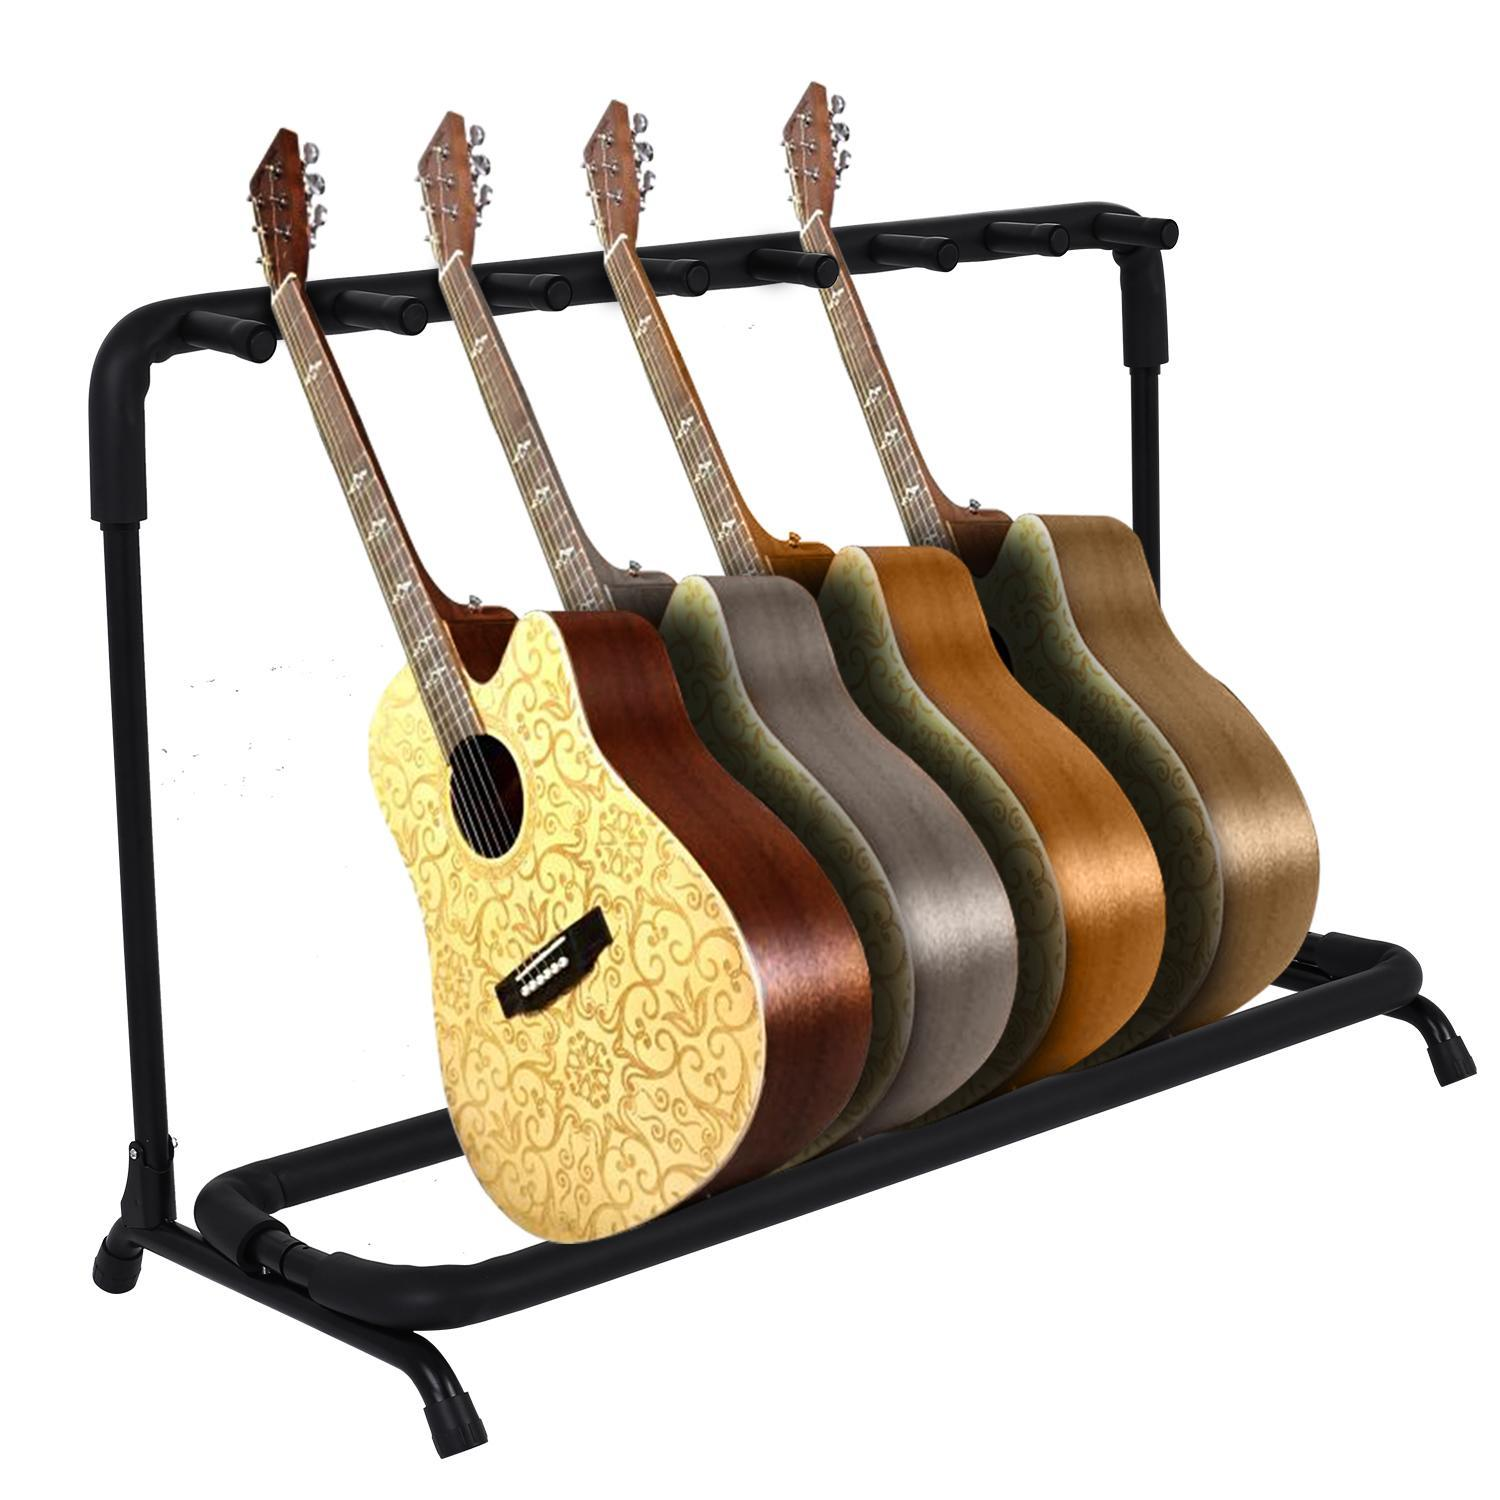 7 Holder Rack Guitar Folding Stand for Classical Electric Acoustic  Guitars